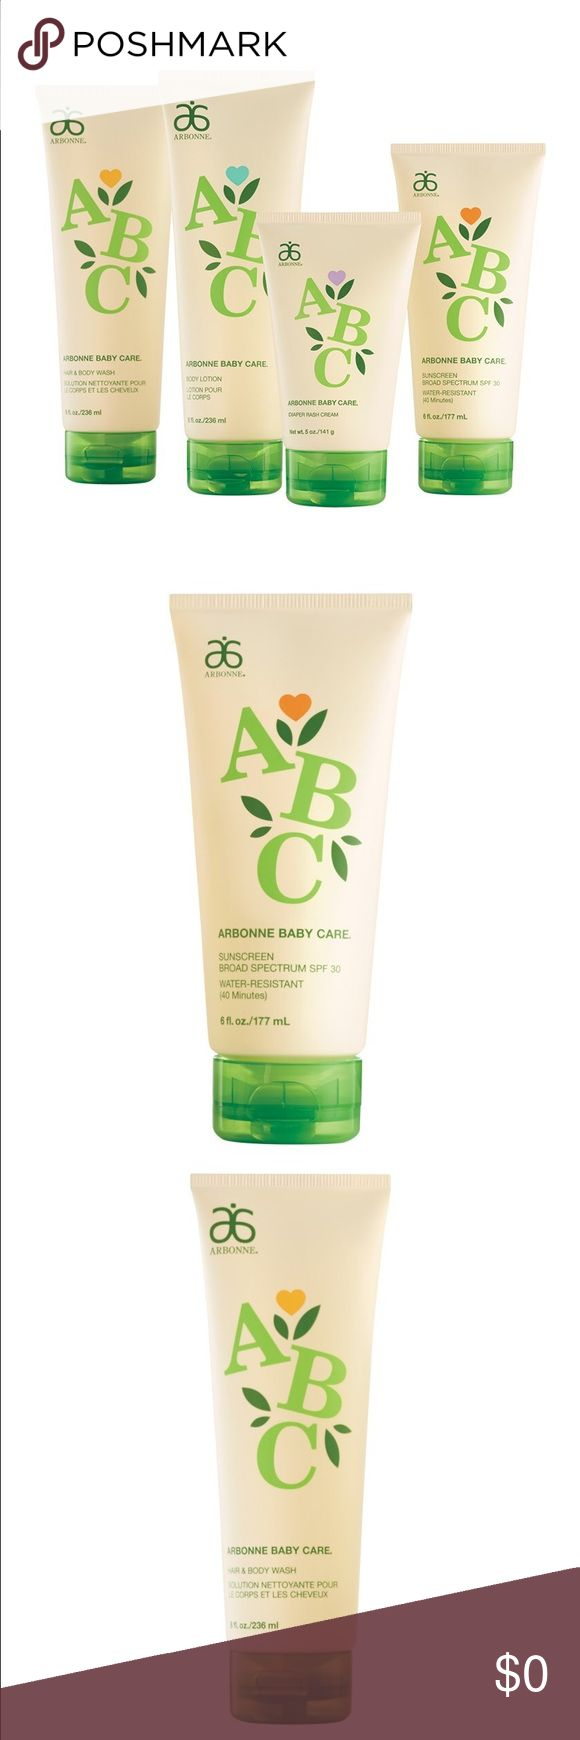 Arbonne ABC Baby Care Line, Truly everyone can use Summer is coming so this description will be for the sunscreen only and then I will comment the rest  of the products 😎🌞 Comment for prices 💵. Formulated with antioxidants, vitamins and soothing botanicals, our water-resistant sunscreen protects, nurtures and moisturizes baby's delicate skin. Developed with sensitive skin in mind, this unscented formula easily glides on while providing broad spectrum protection. Arbonne Other